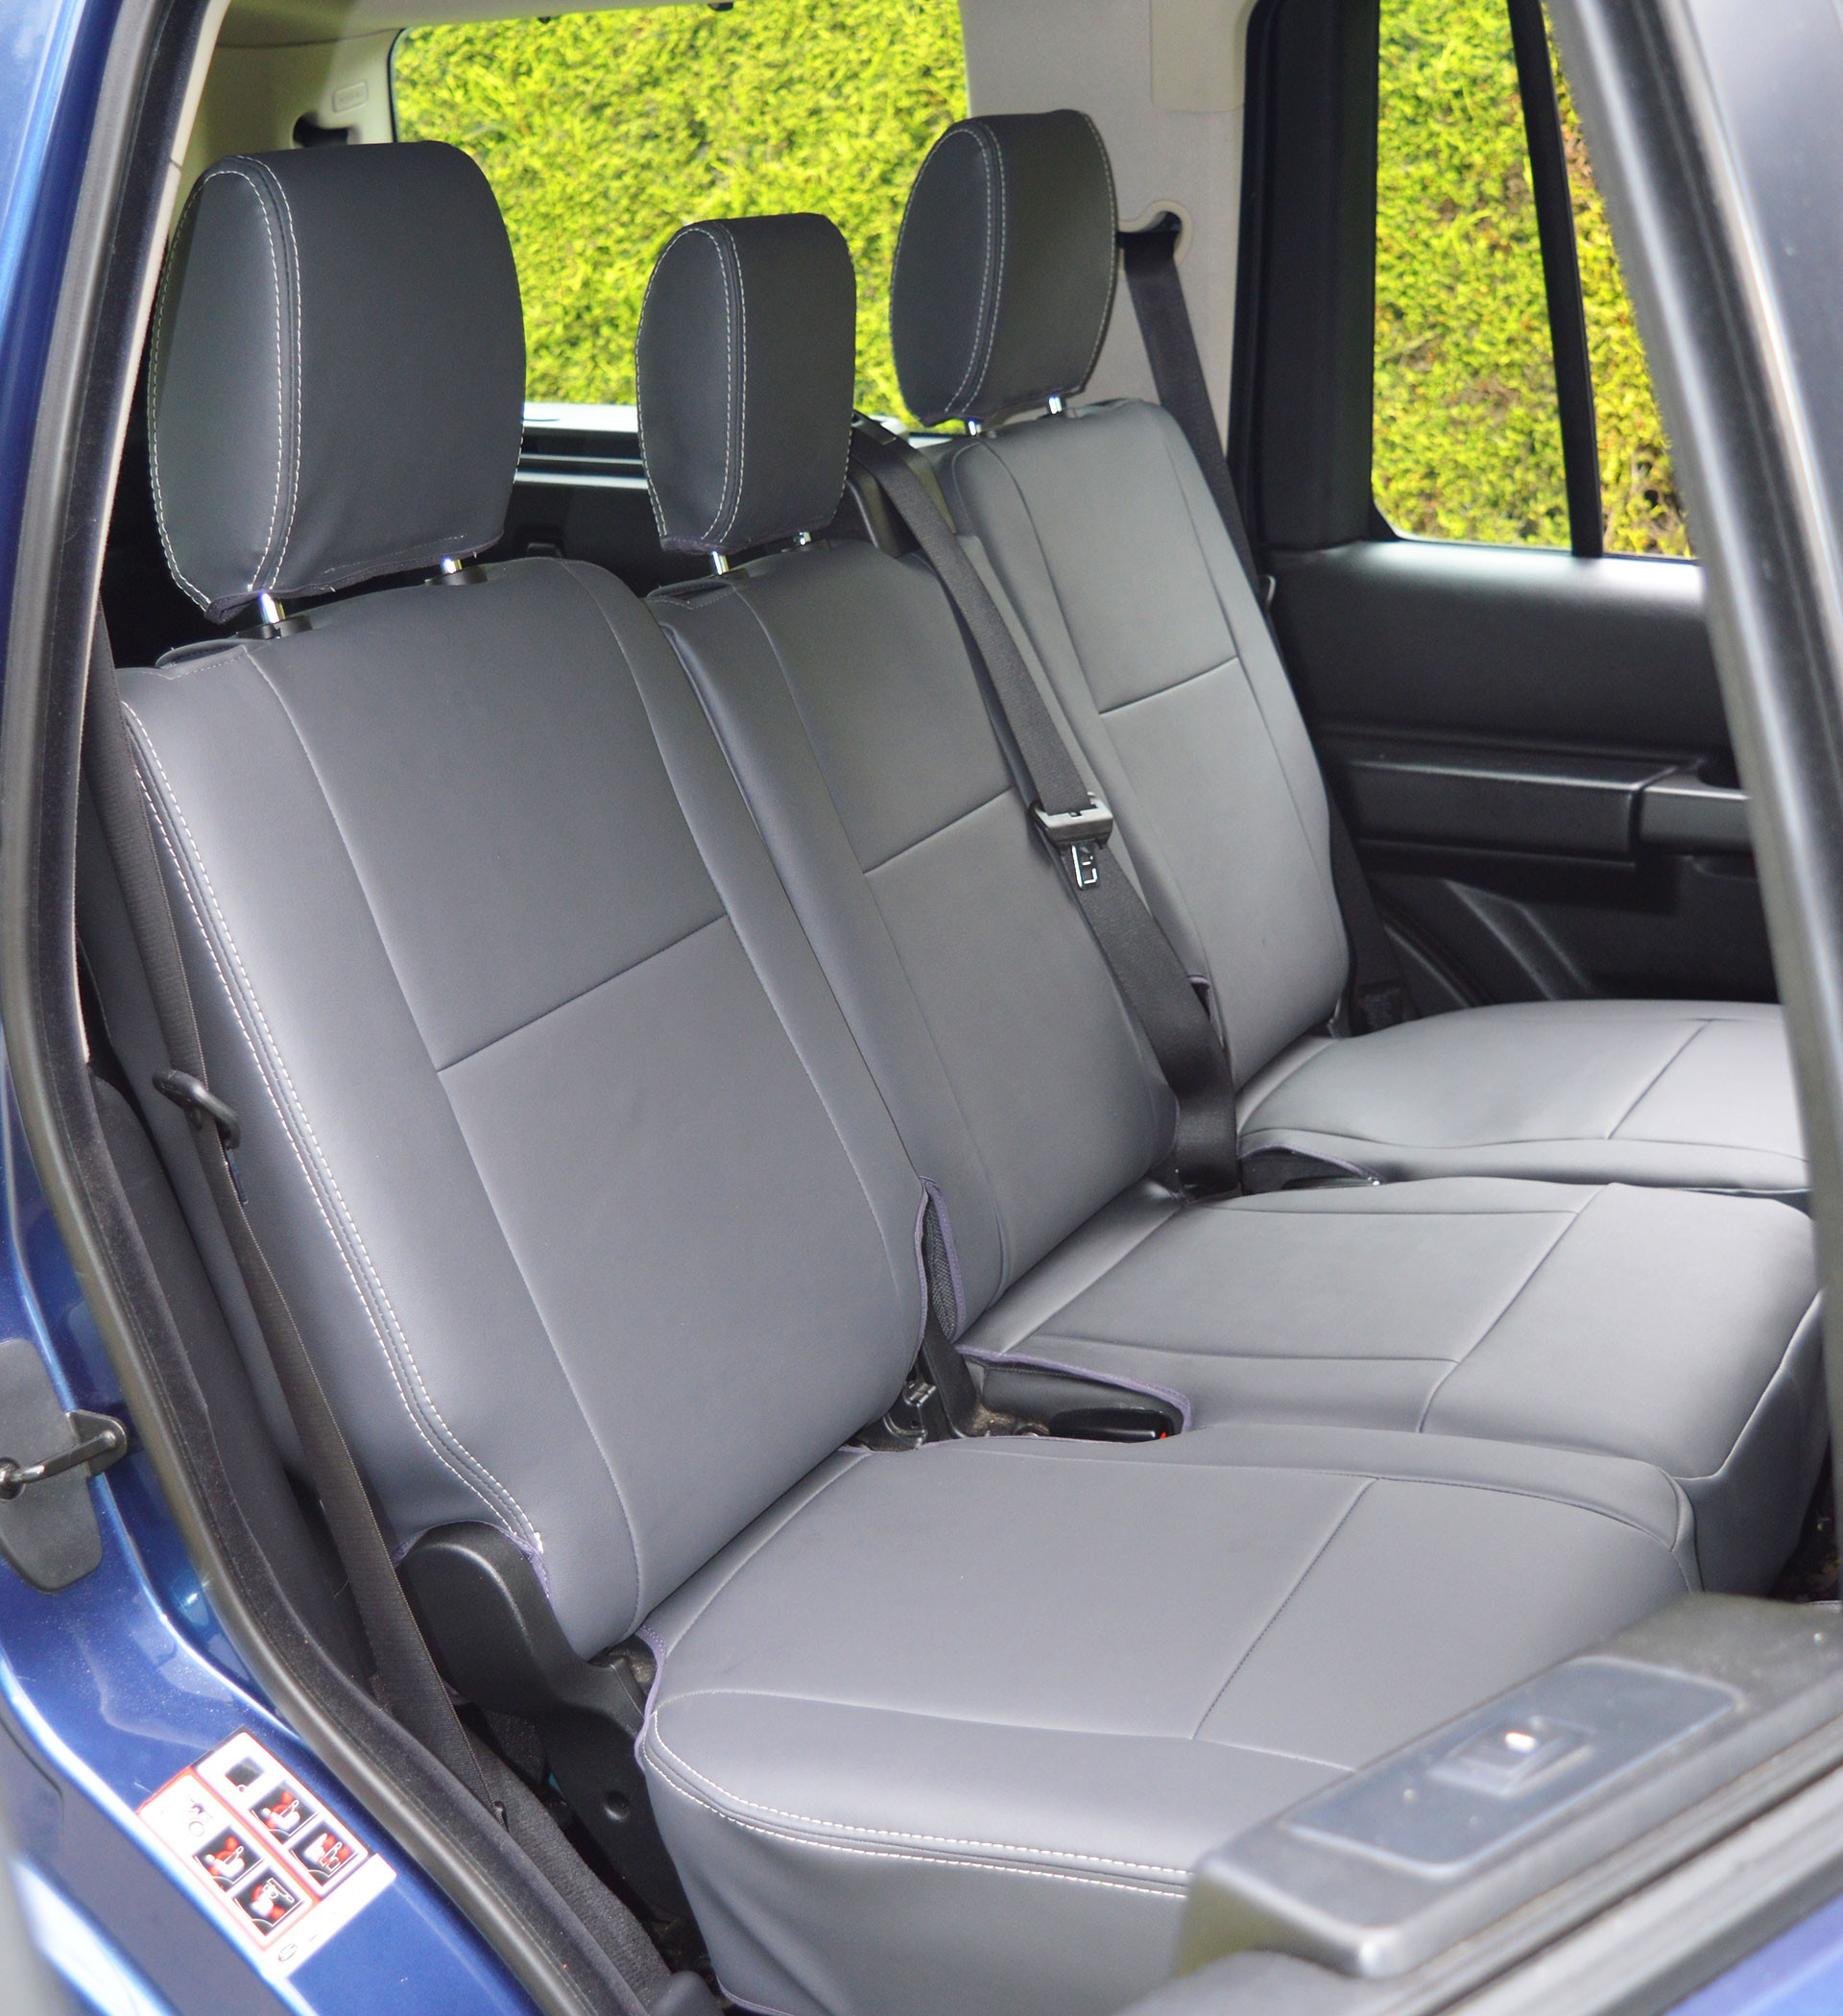 Land Rover Discovery 3 Tailored Waterproof Seat Covers Car